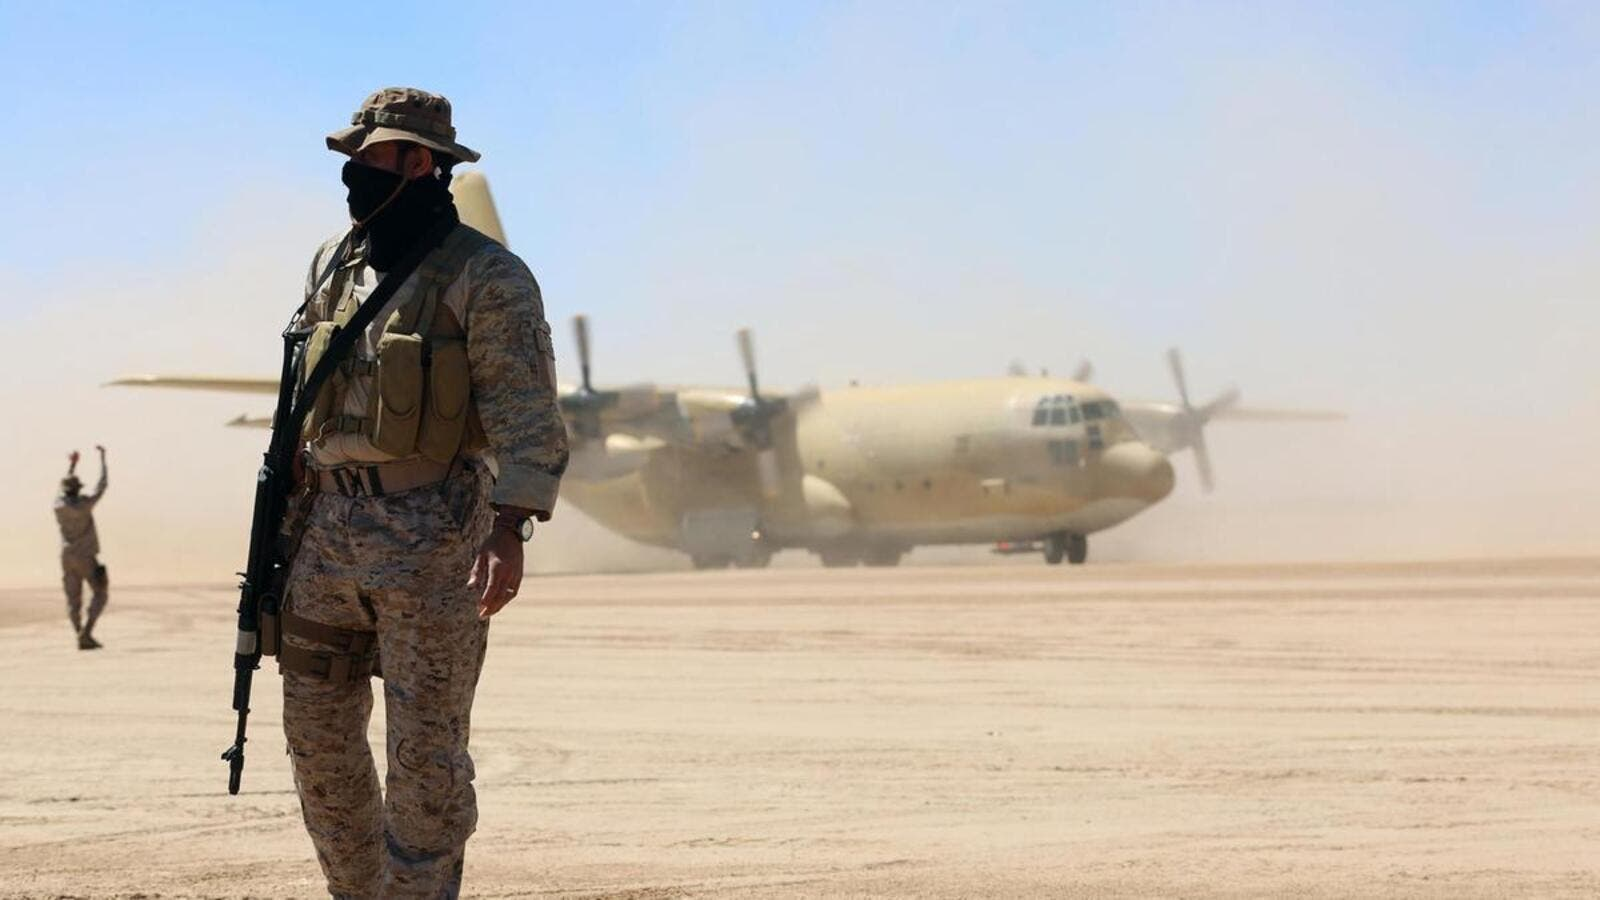 Saudi soldiers stand guard as a Saudi air force cargo plane, carrying aid, lands at an airfield in Yemen's central province of Marib, on February 8, 2018. (AFP/ File Photo)